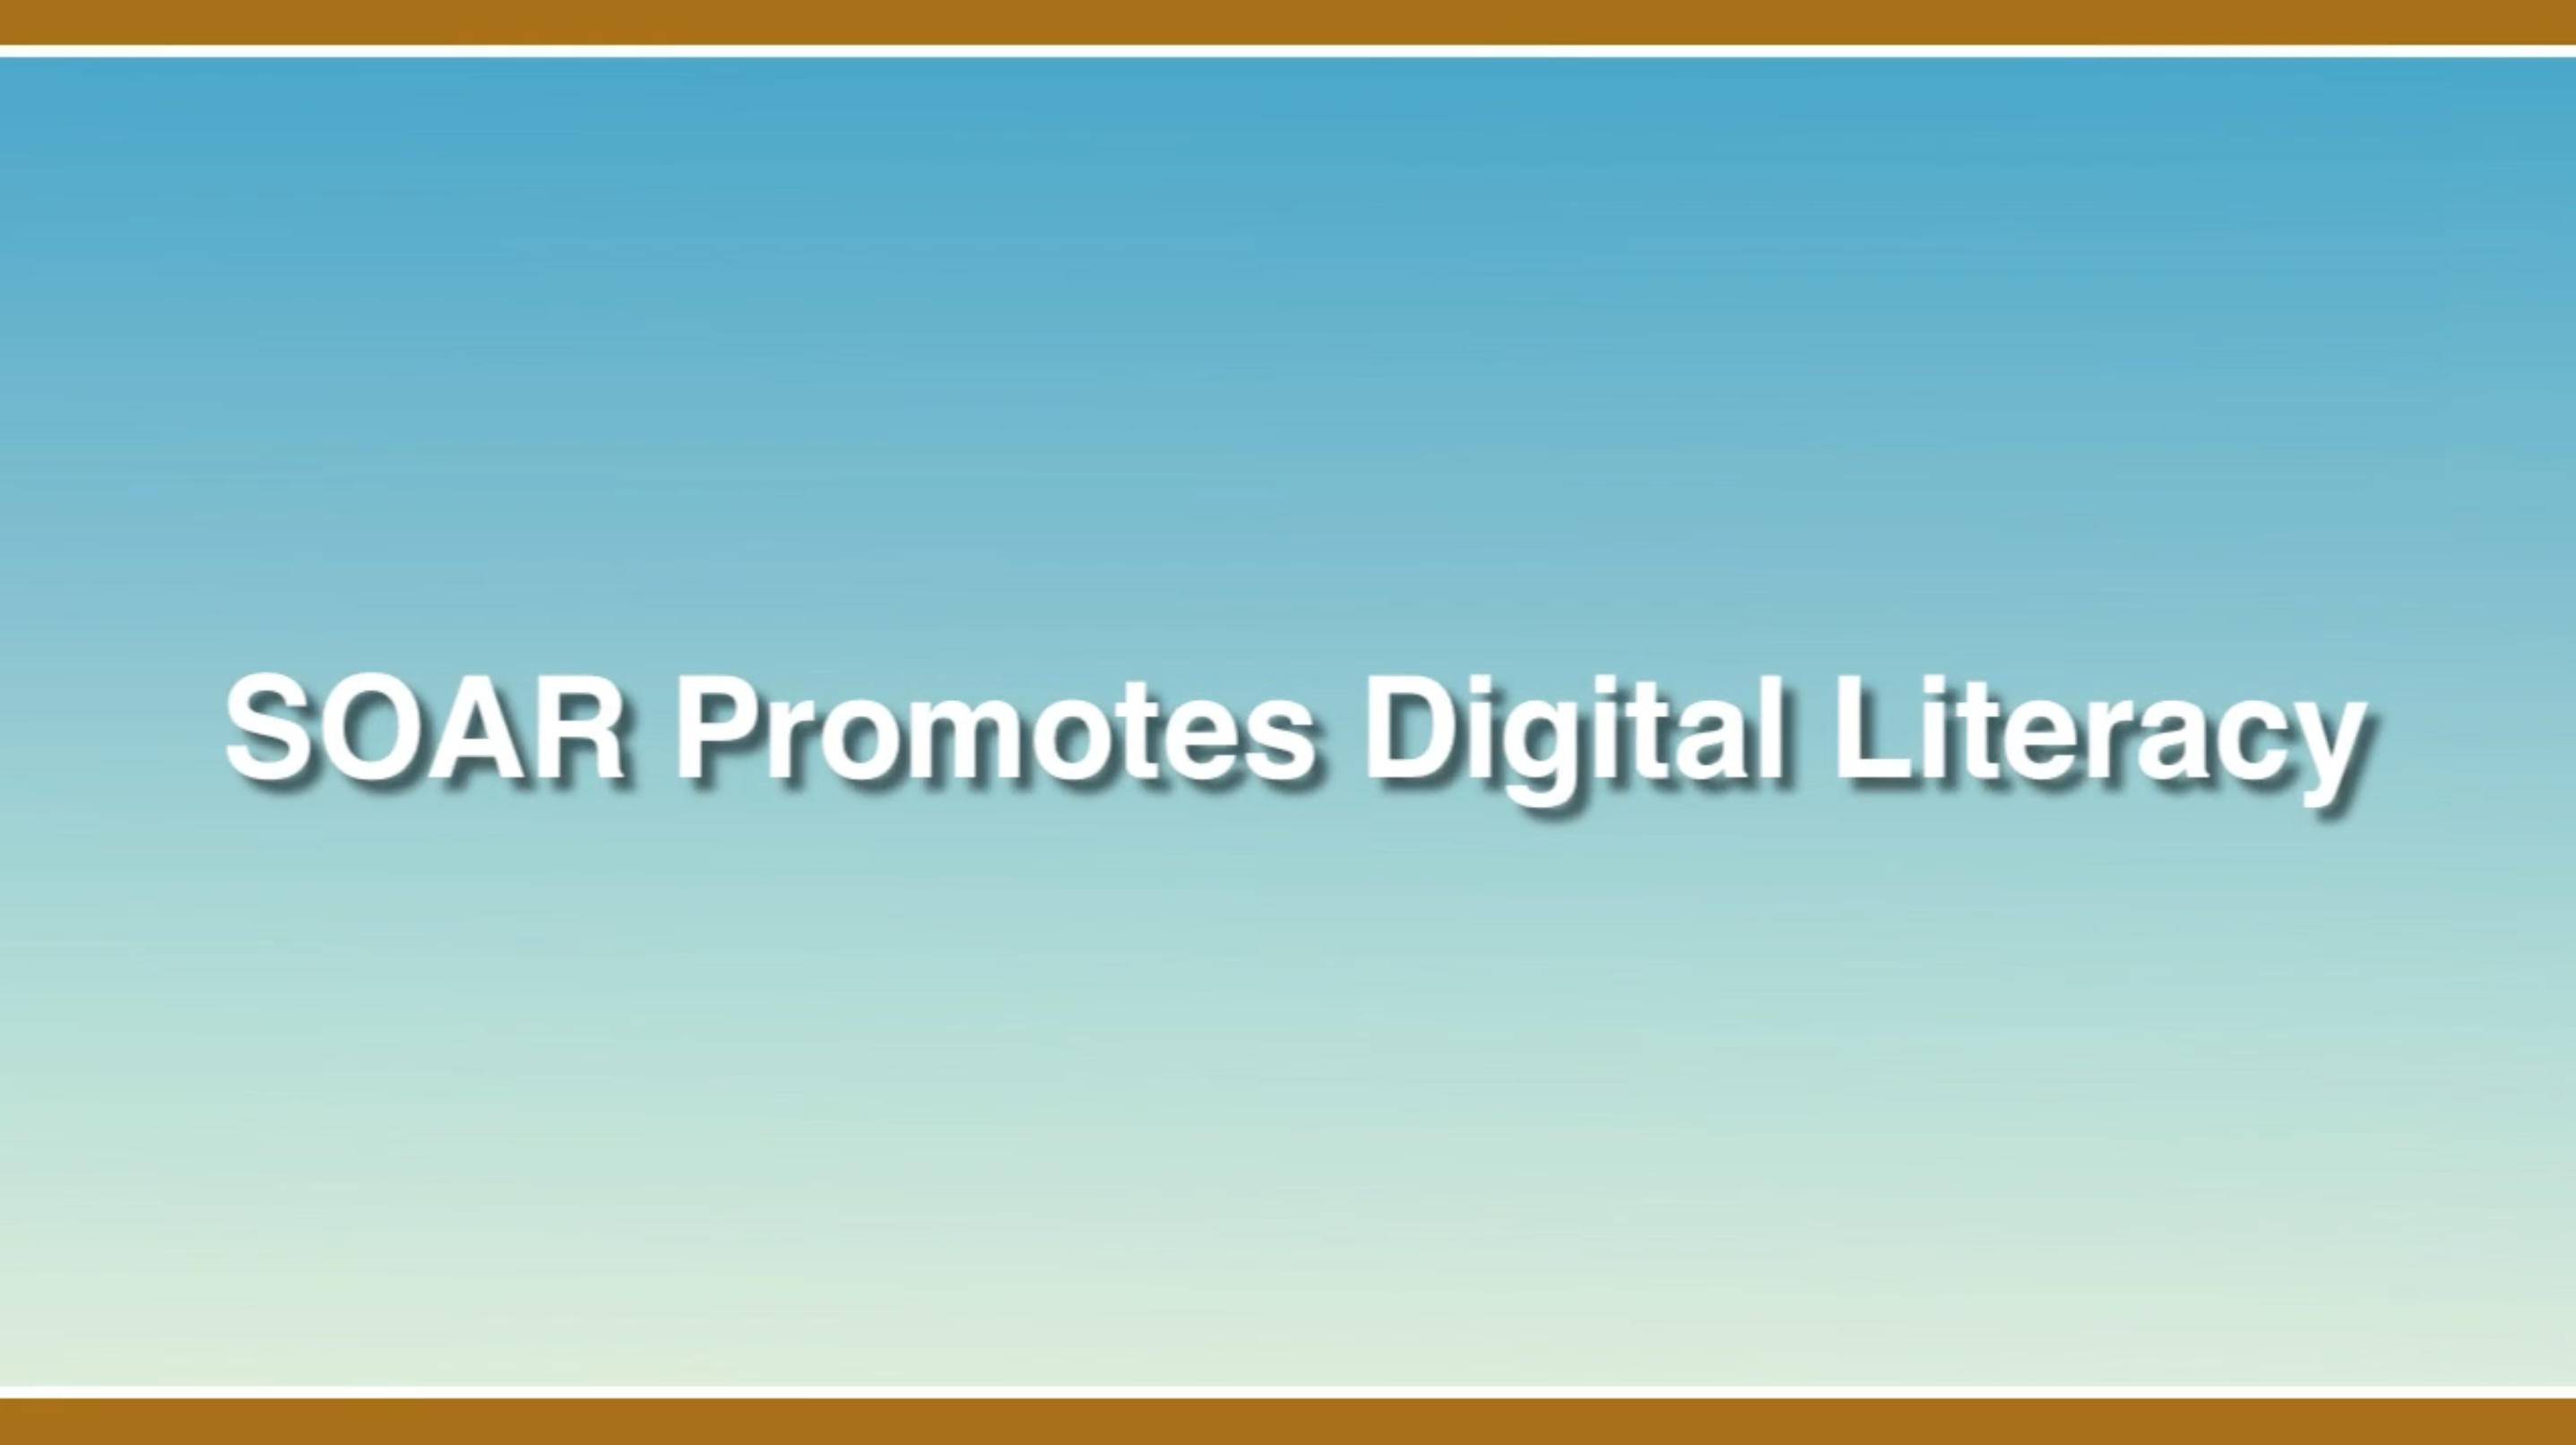 Link to the SOAR Promotes Digital Literacy Video